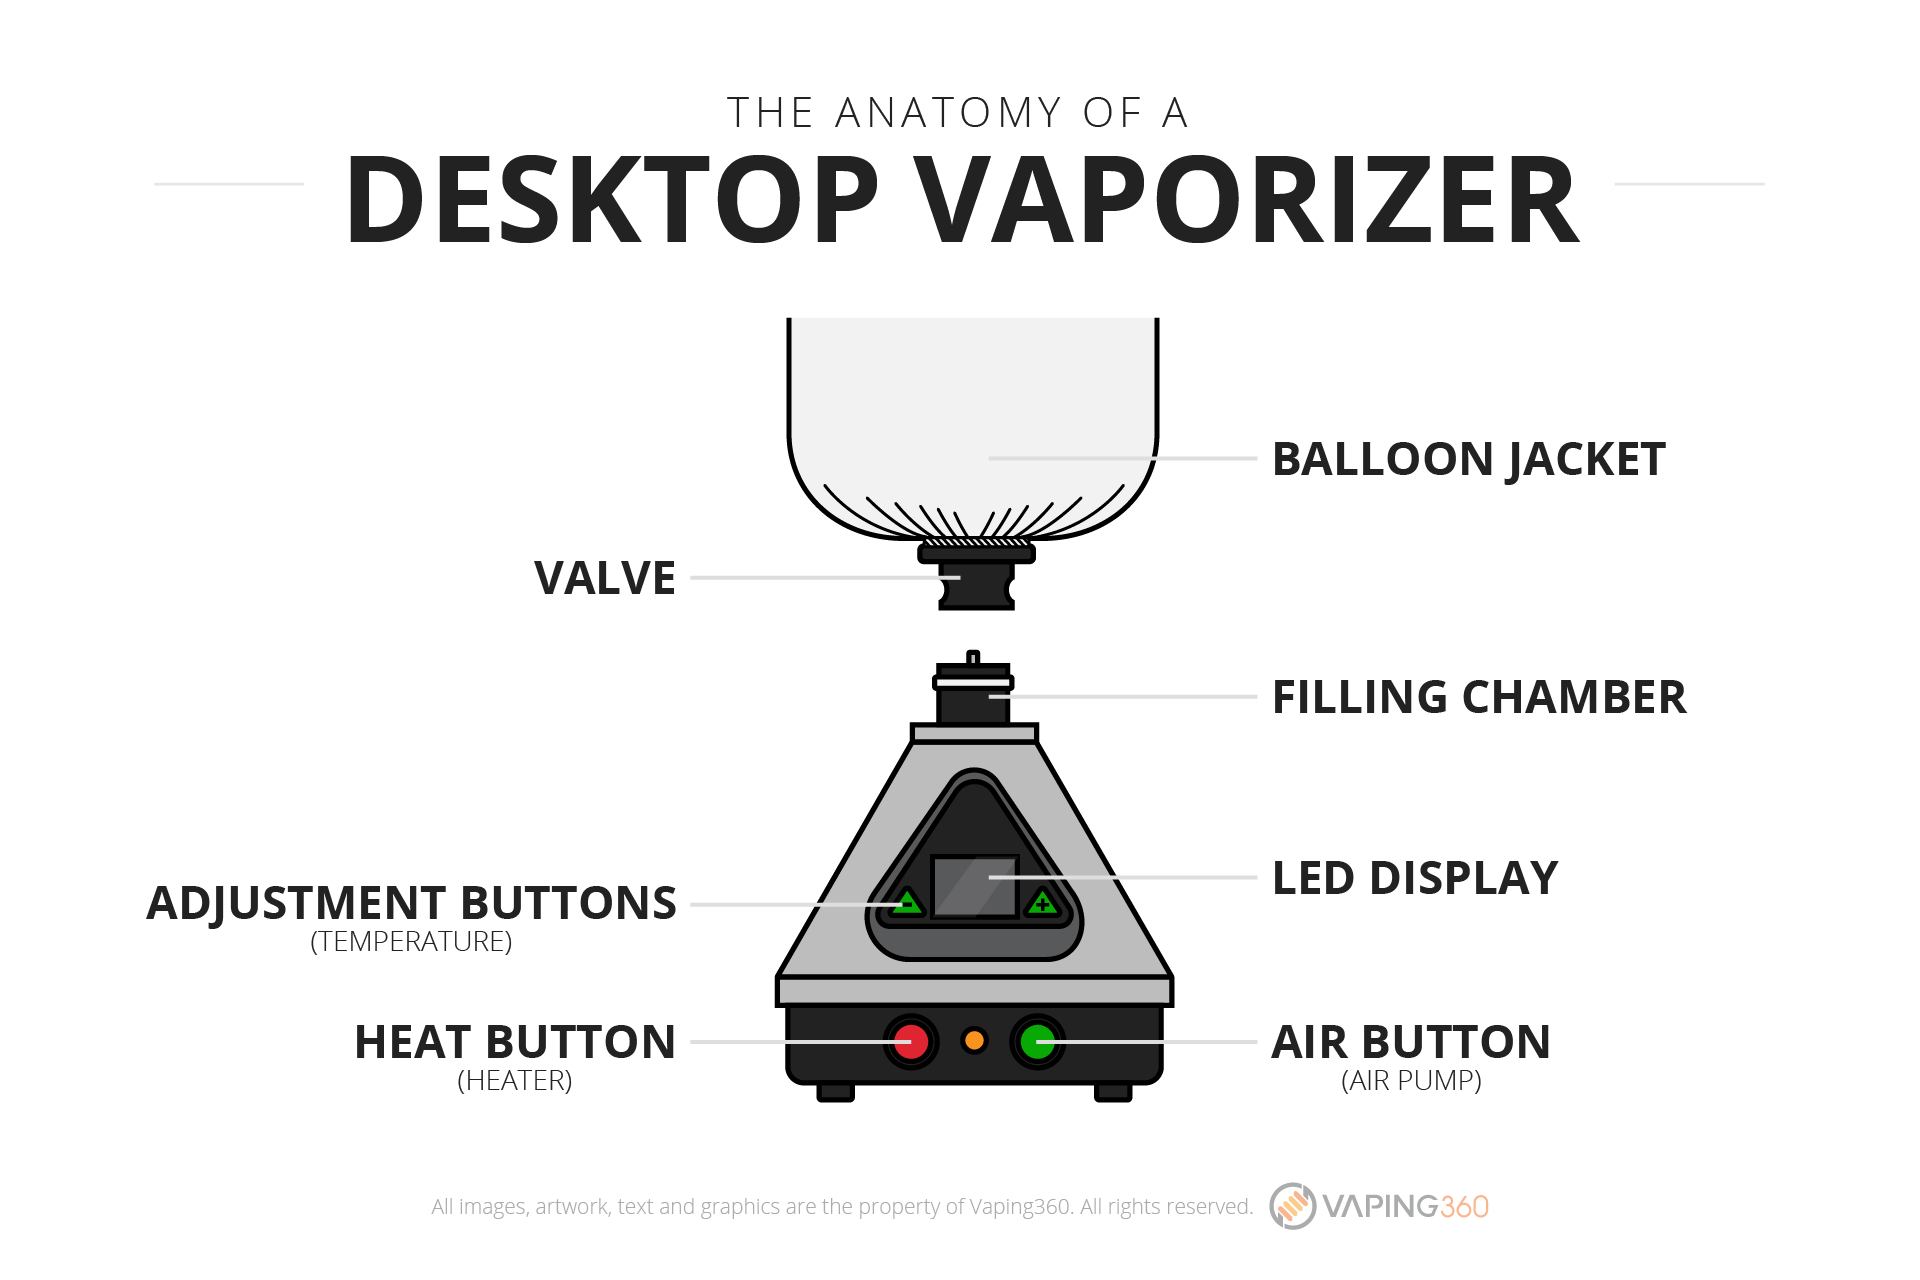 desktop vaporizer anatomy graphic